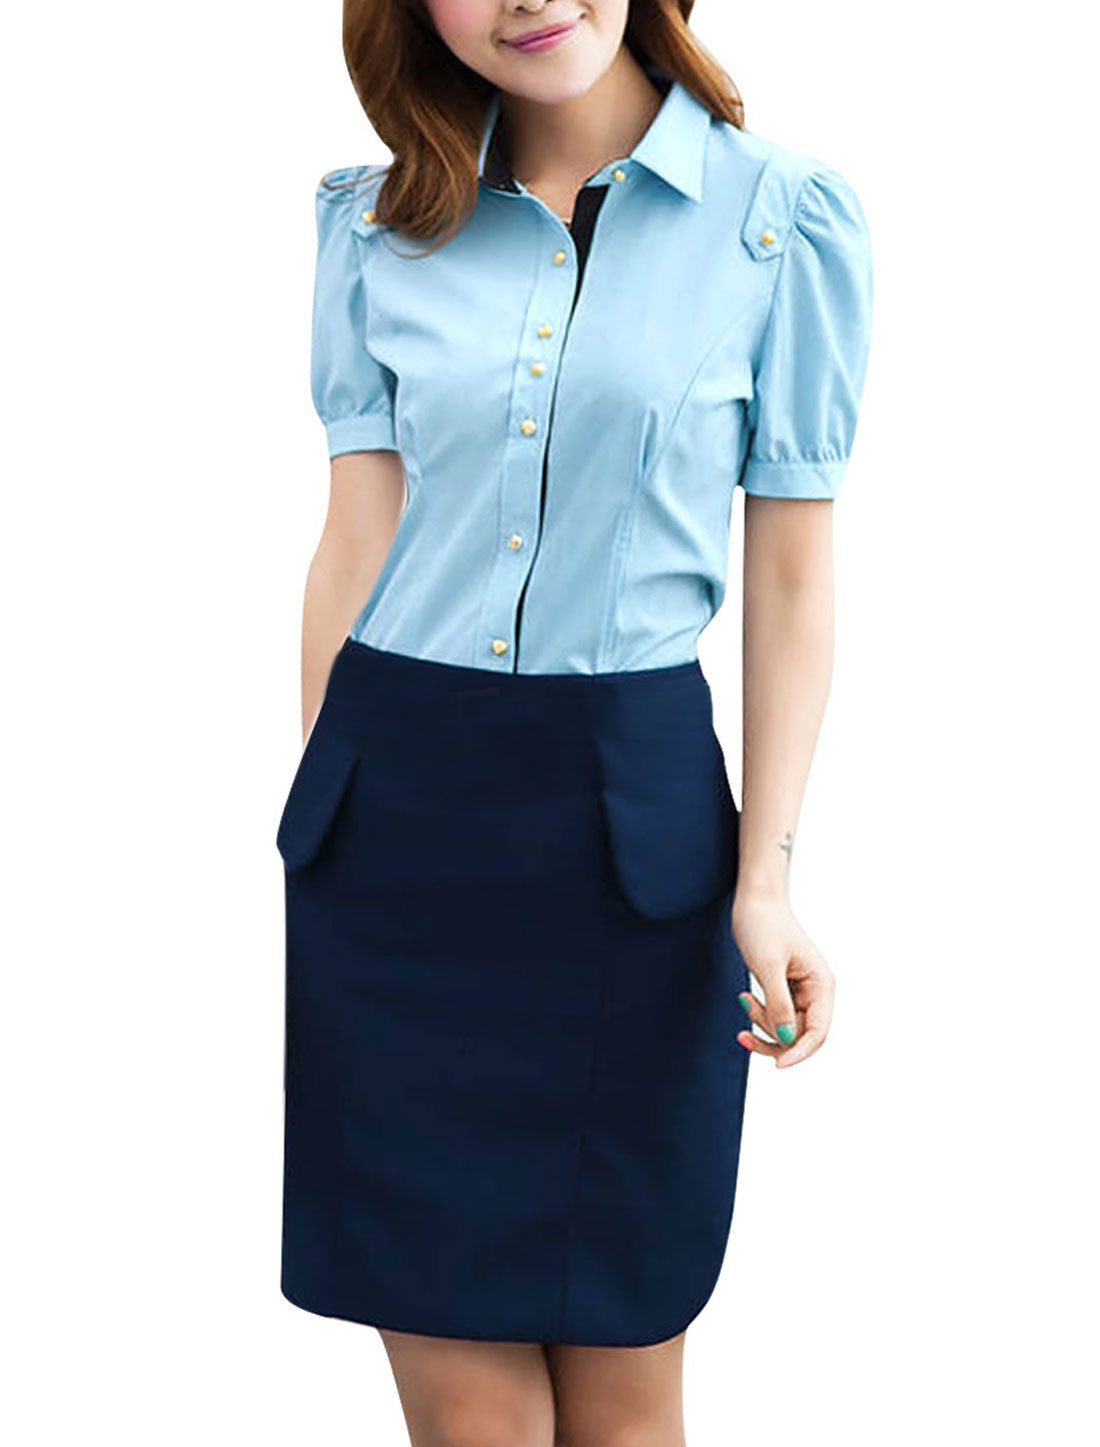 XS Ladies Short Sleeve Button Front Style Slim Fit Round Hem Shirt Blue